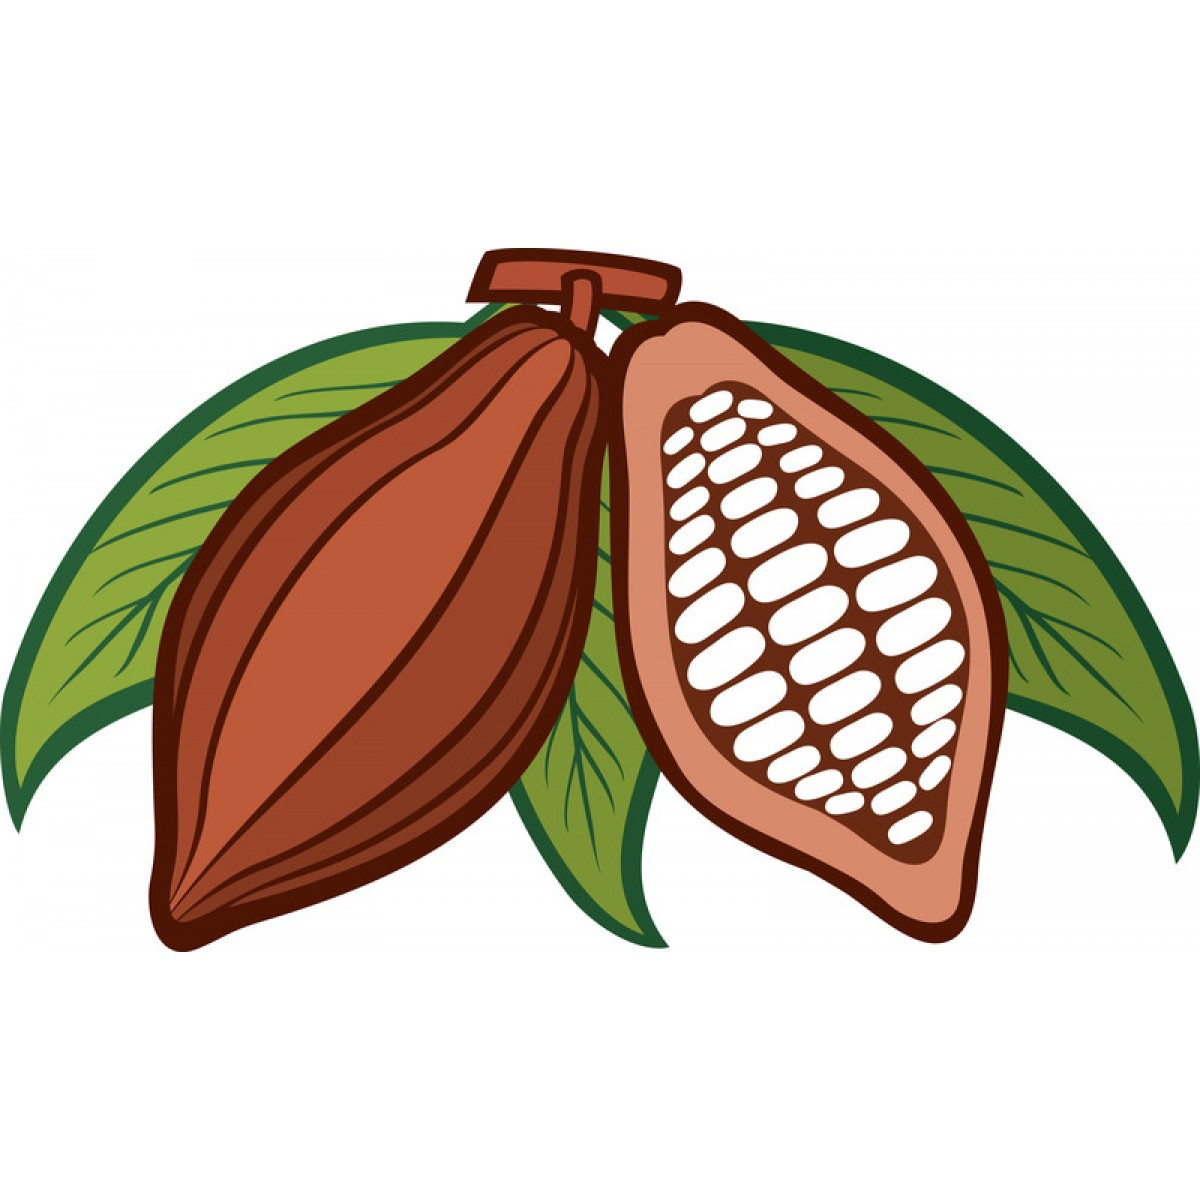 Cacao clipart Organic Beans More Cacao Views